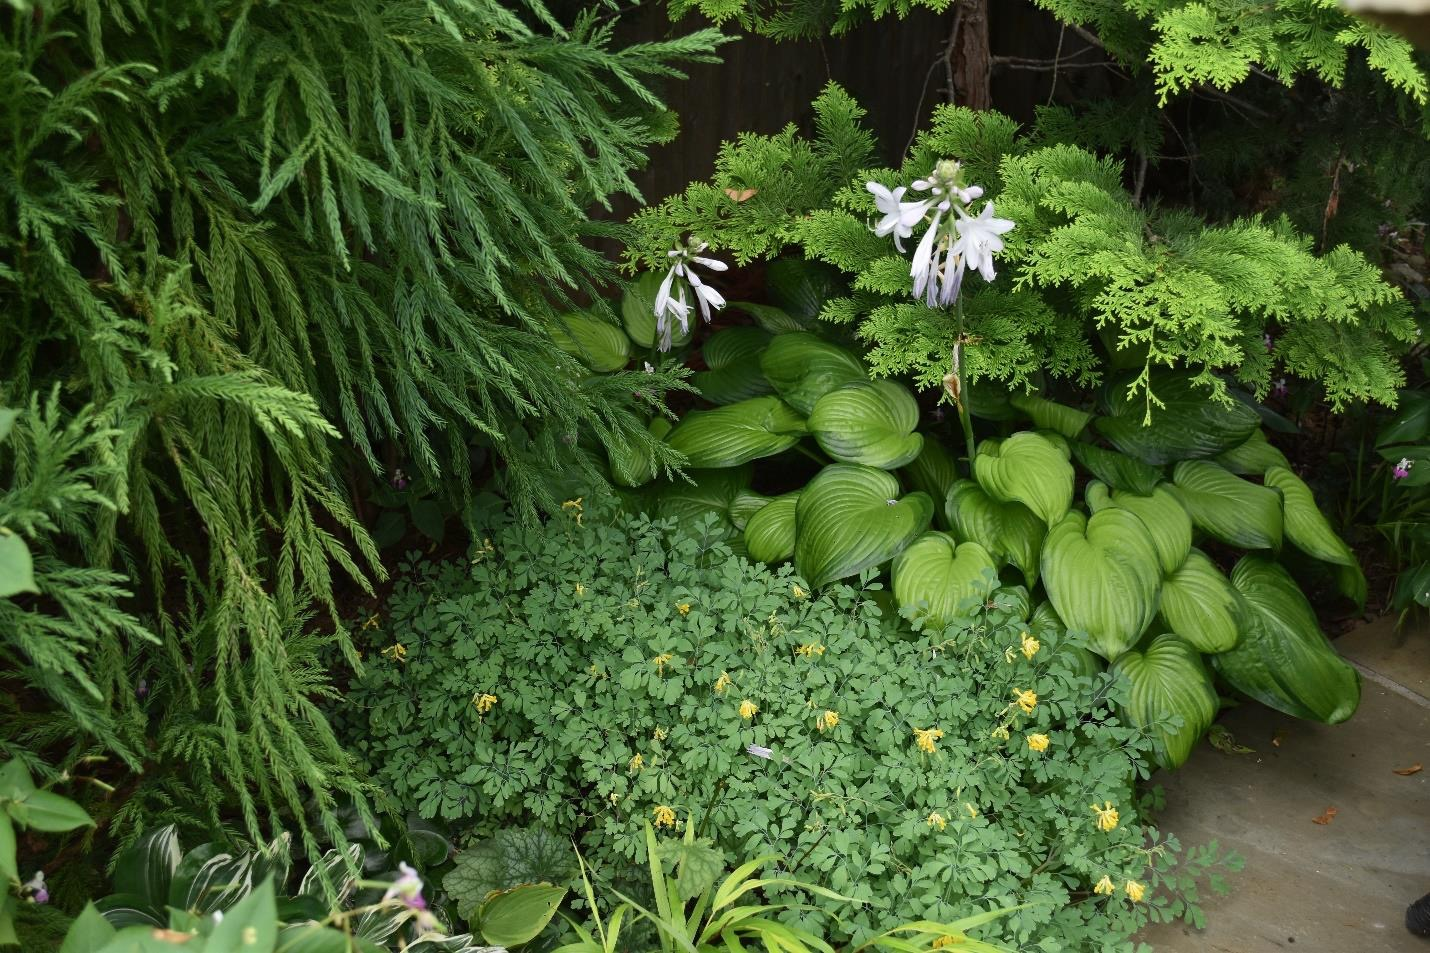 Shady garden with various foliage plants